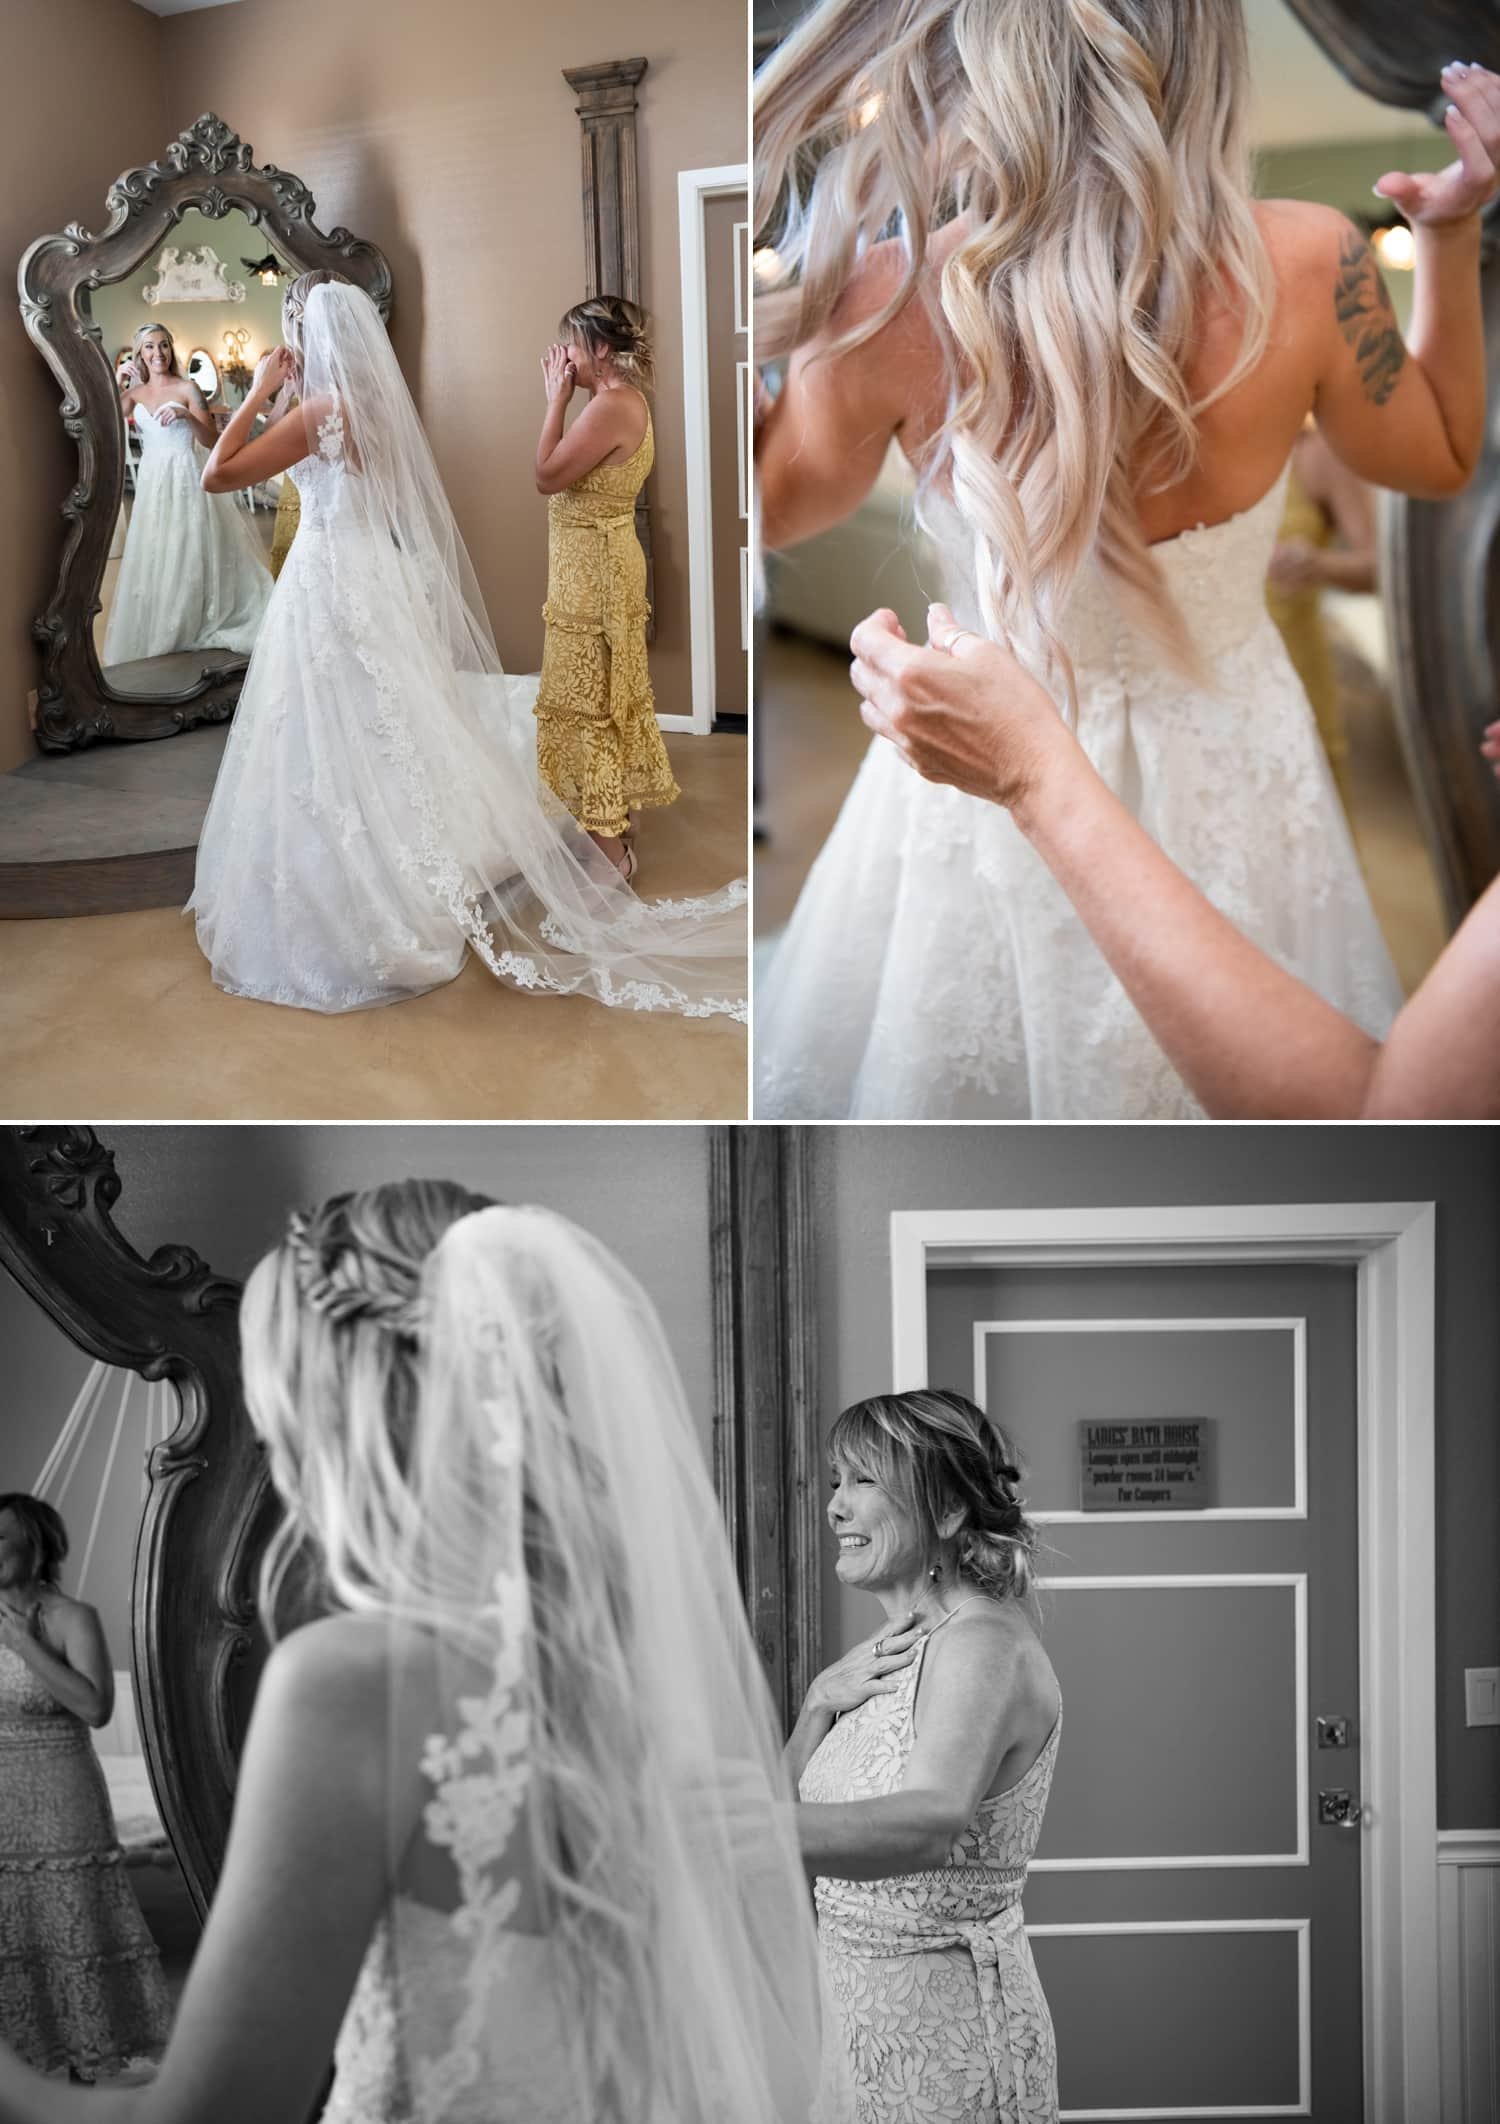 Bride getting her veil put on in the bridal suite at Ethereal Gardens.